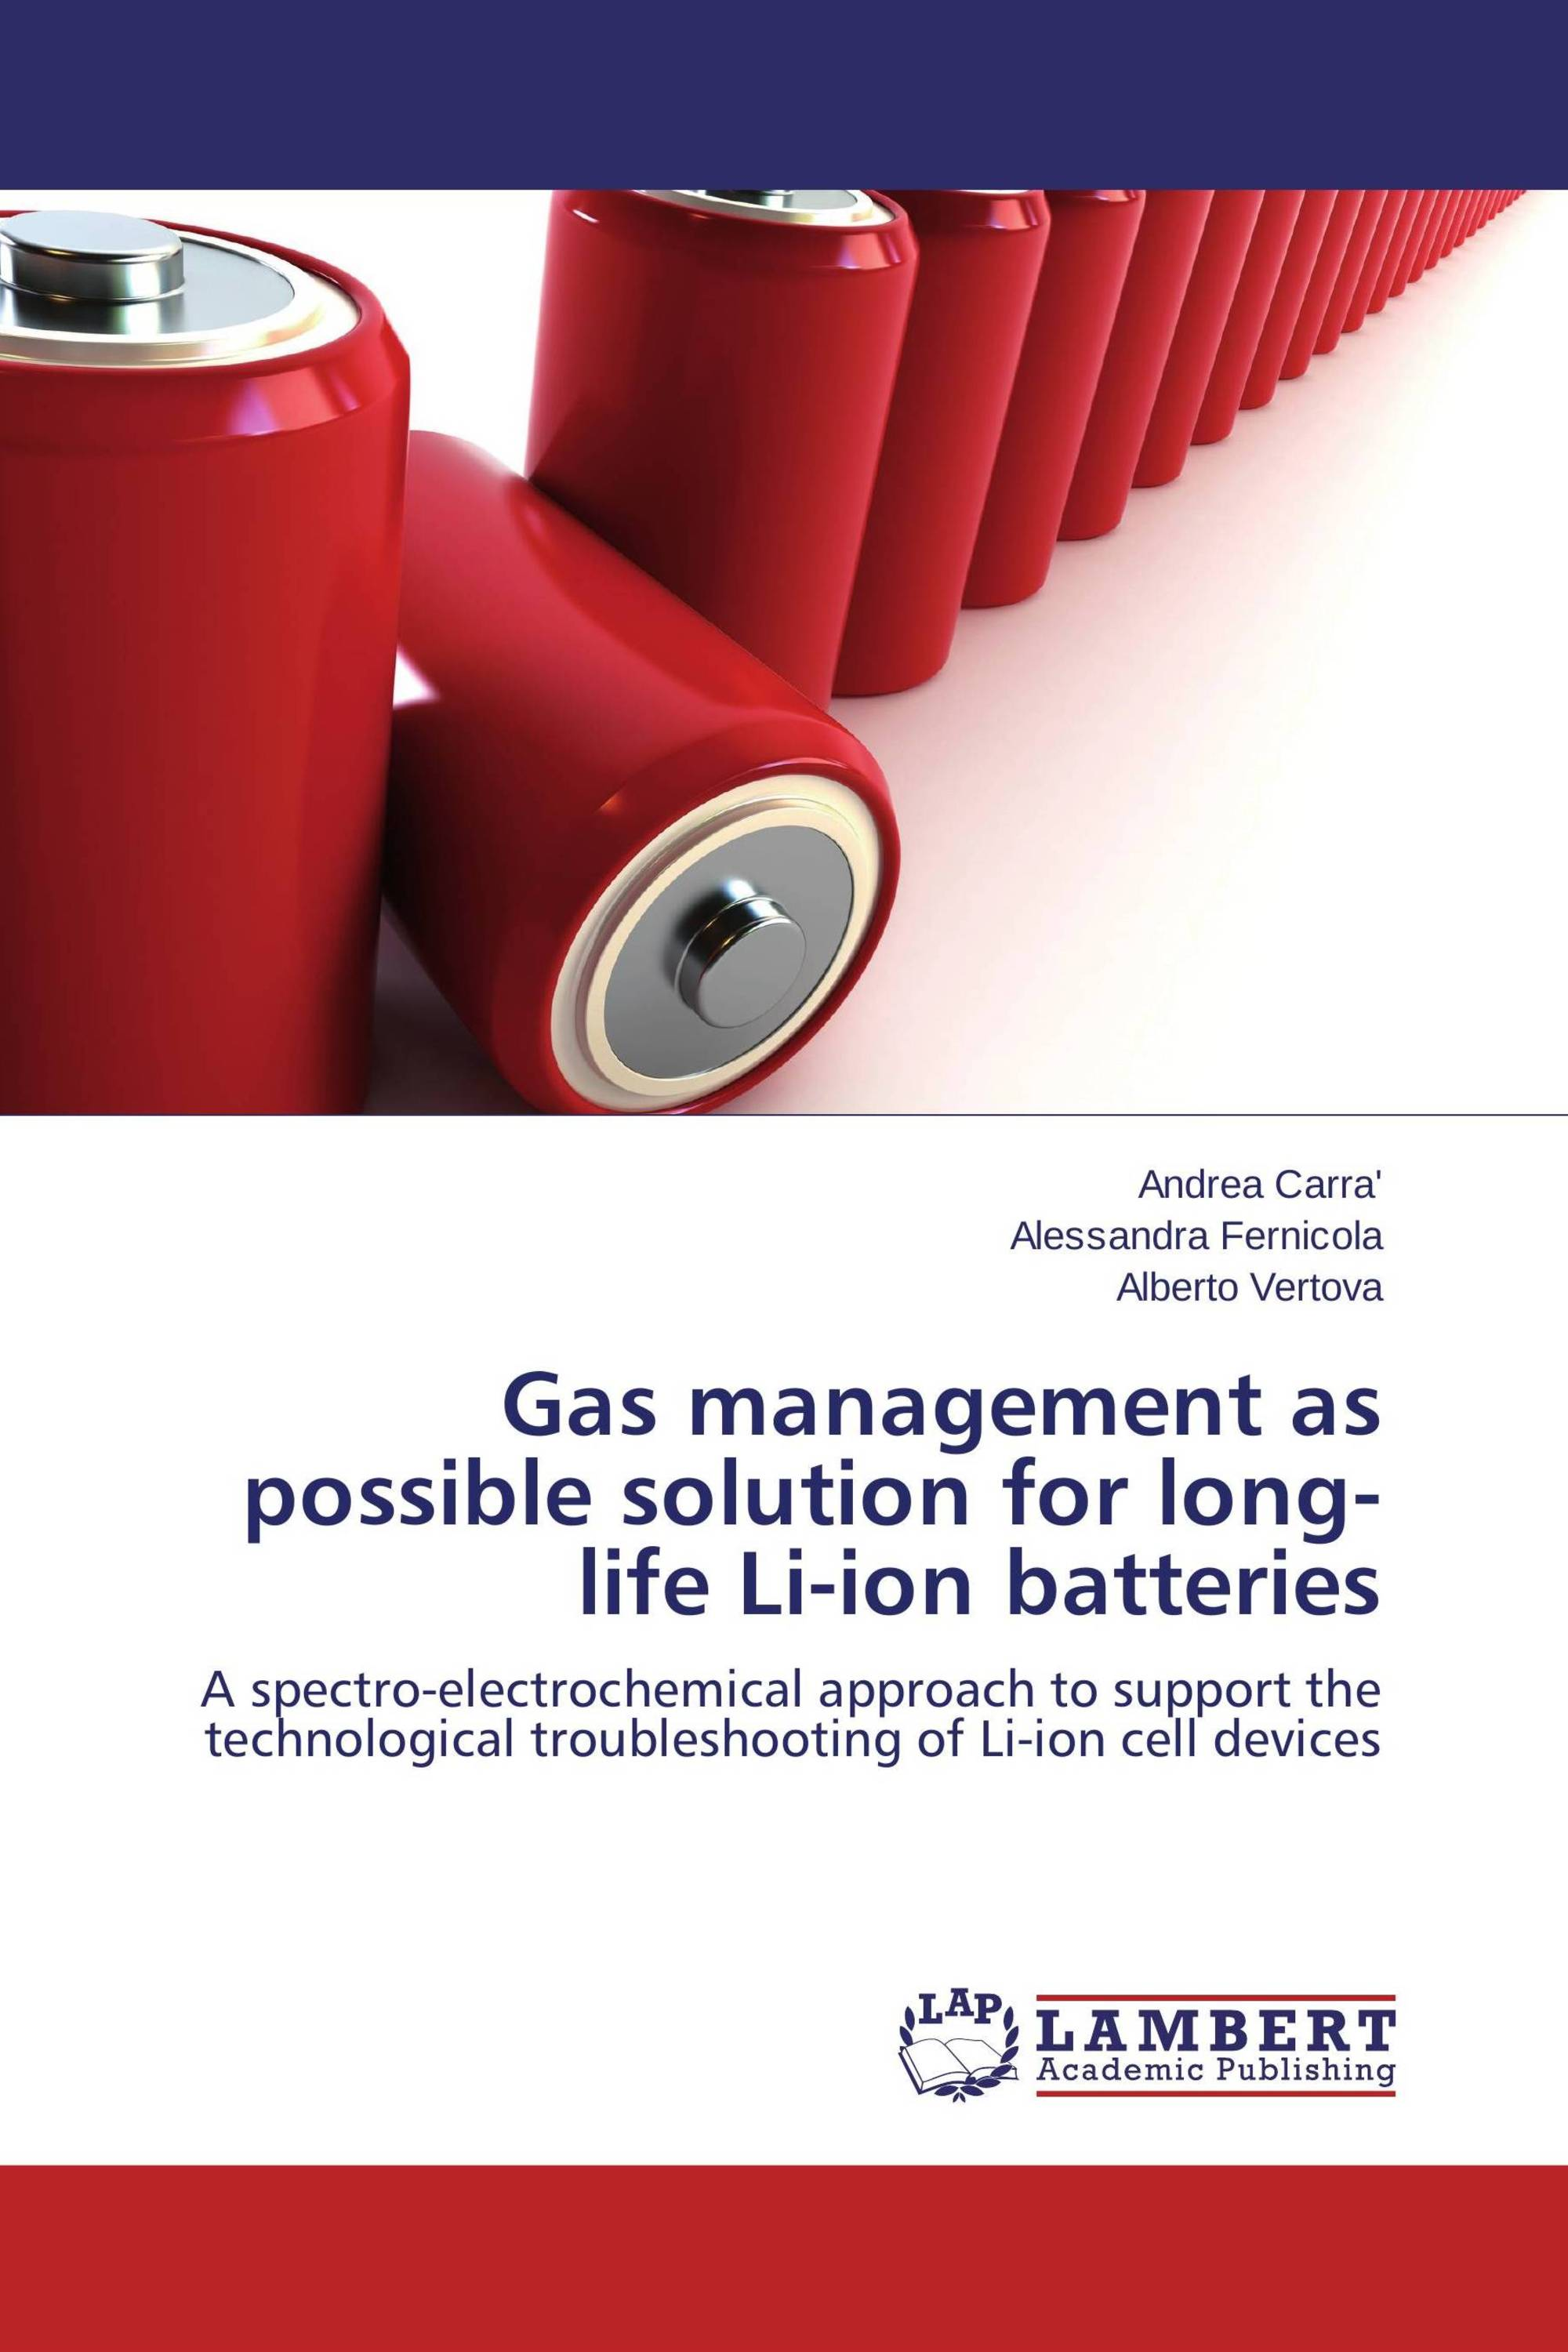 Gas management as possible solution for long-life Li-ion batteries